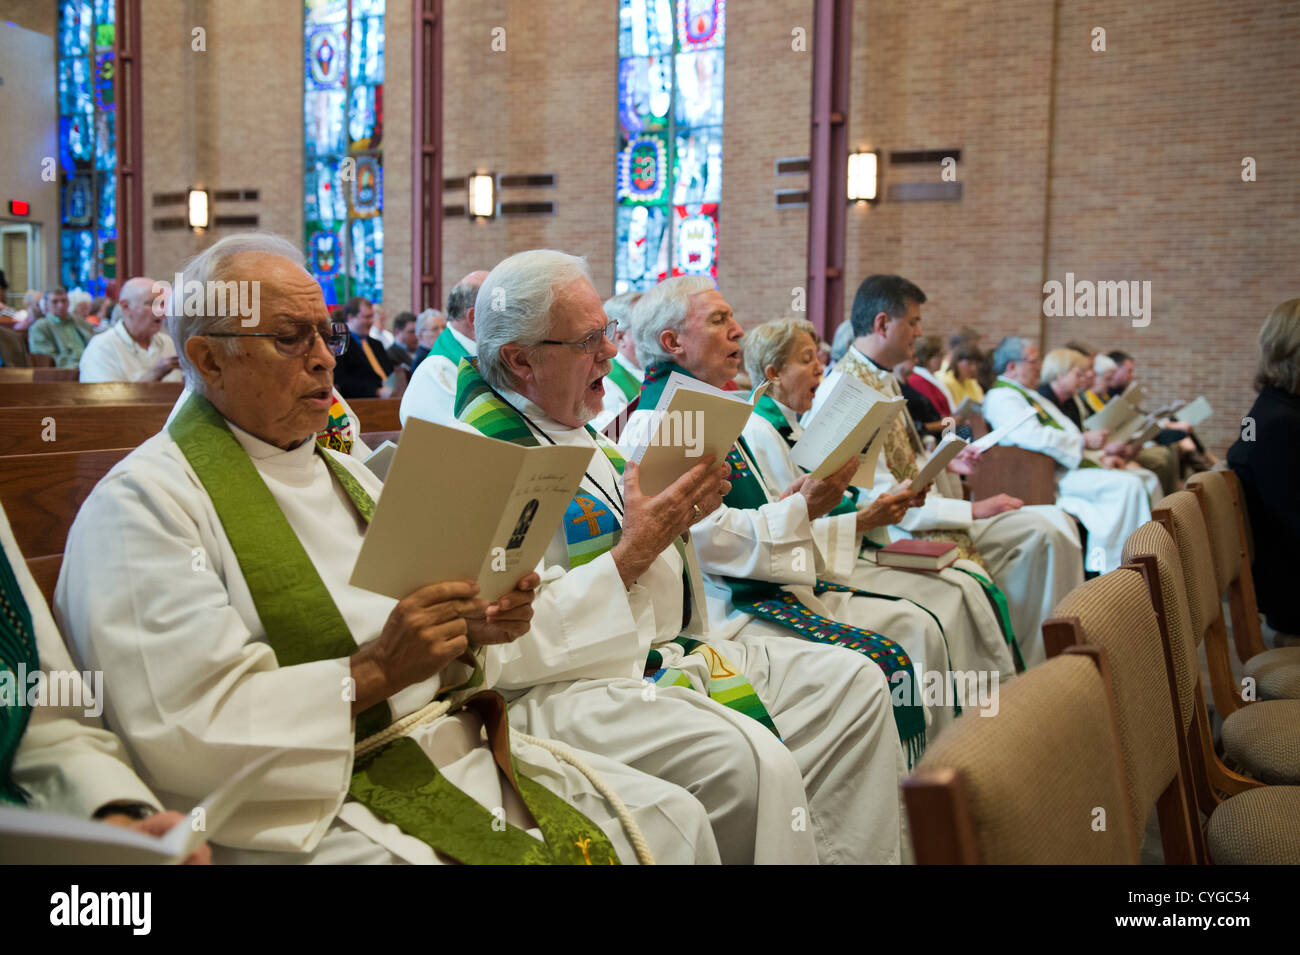 Lutheran clergy from central Texas gather as Rev. Peder Sandager is installed as senior pastor at St. Martin's - Stock Image